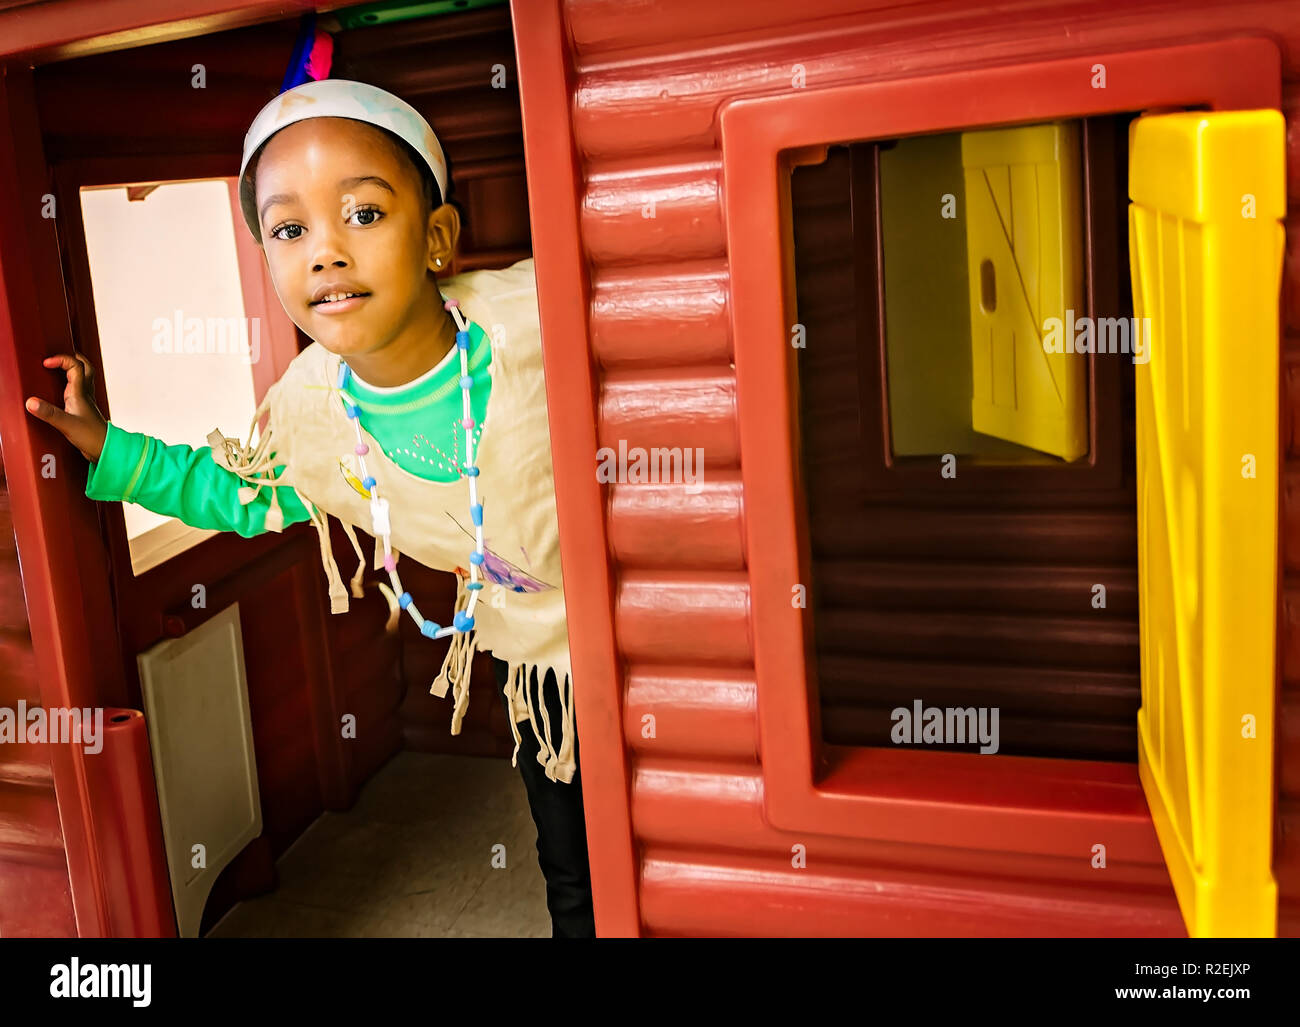 A pre-school student peeks out of a log cabin playhouse while dressed in a Native American Indian costume, Nov. 21, 2012, in Columbus, Mississippi. - Stock Image